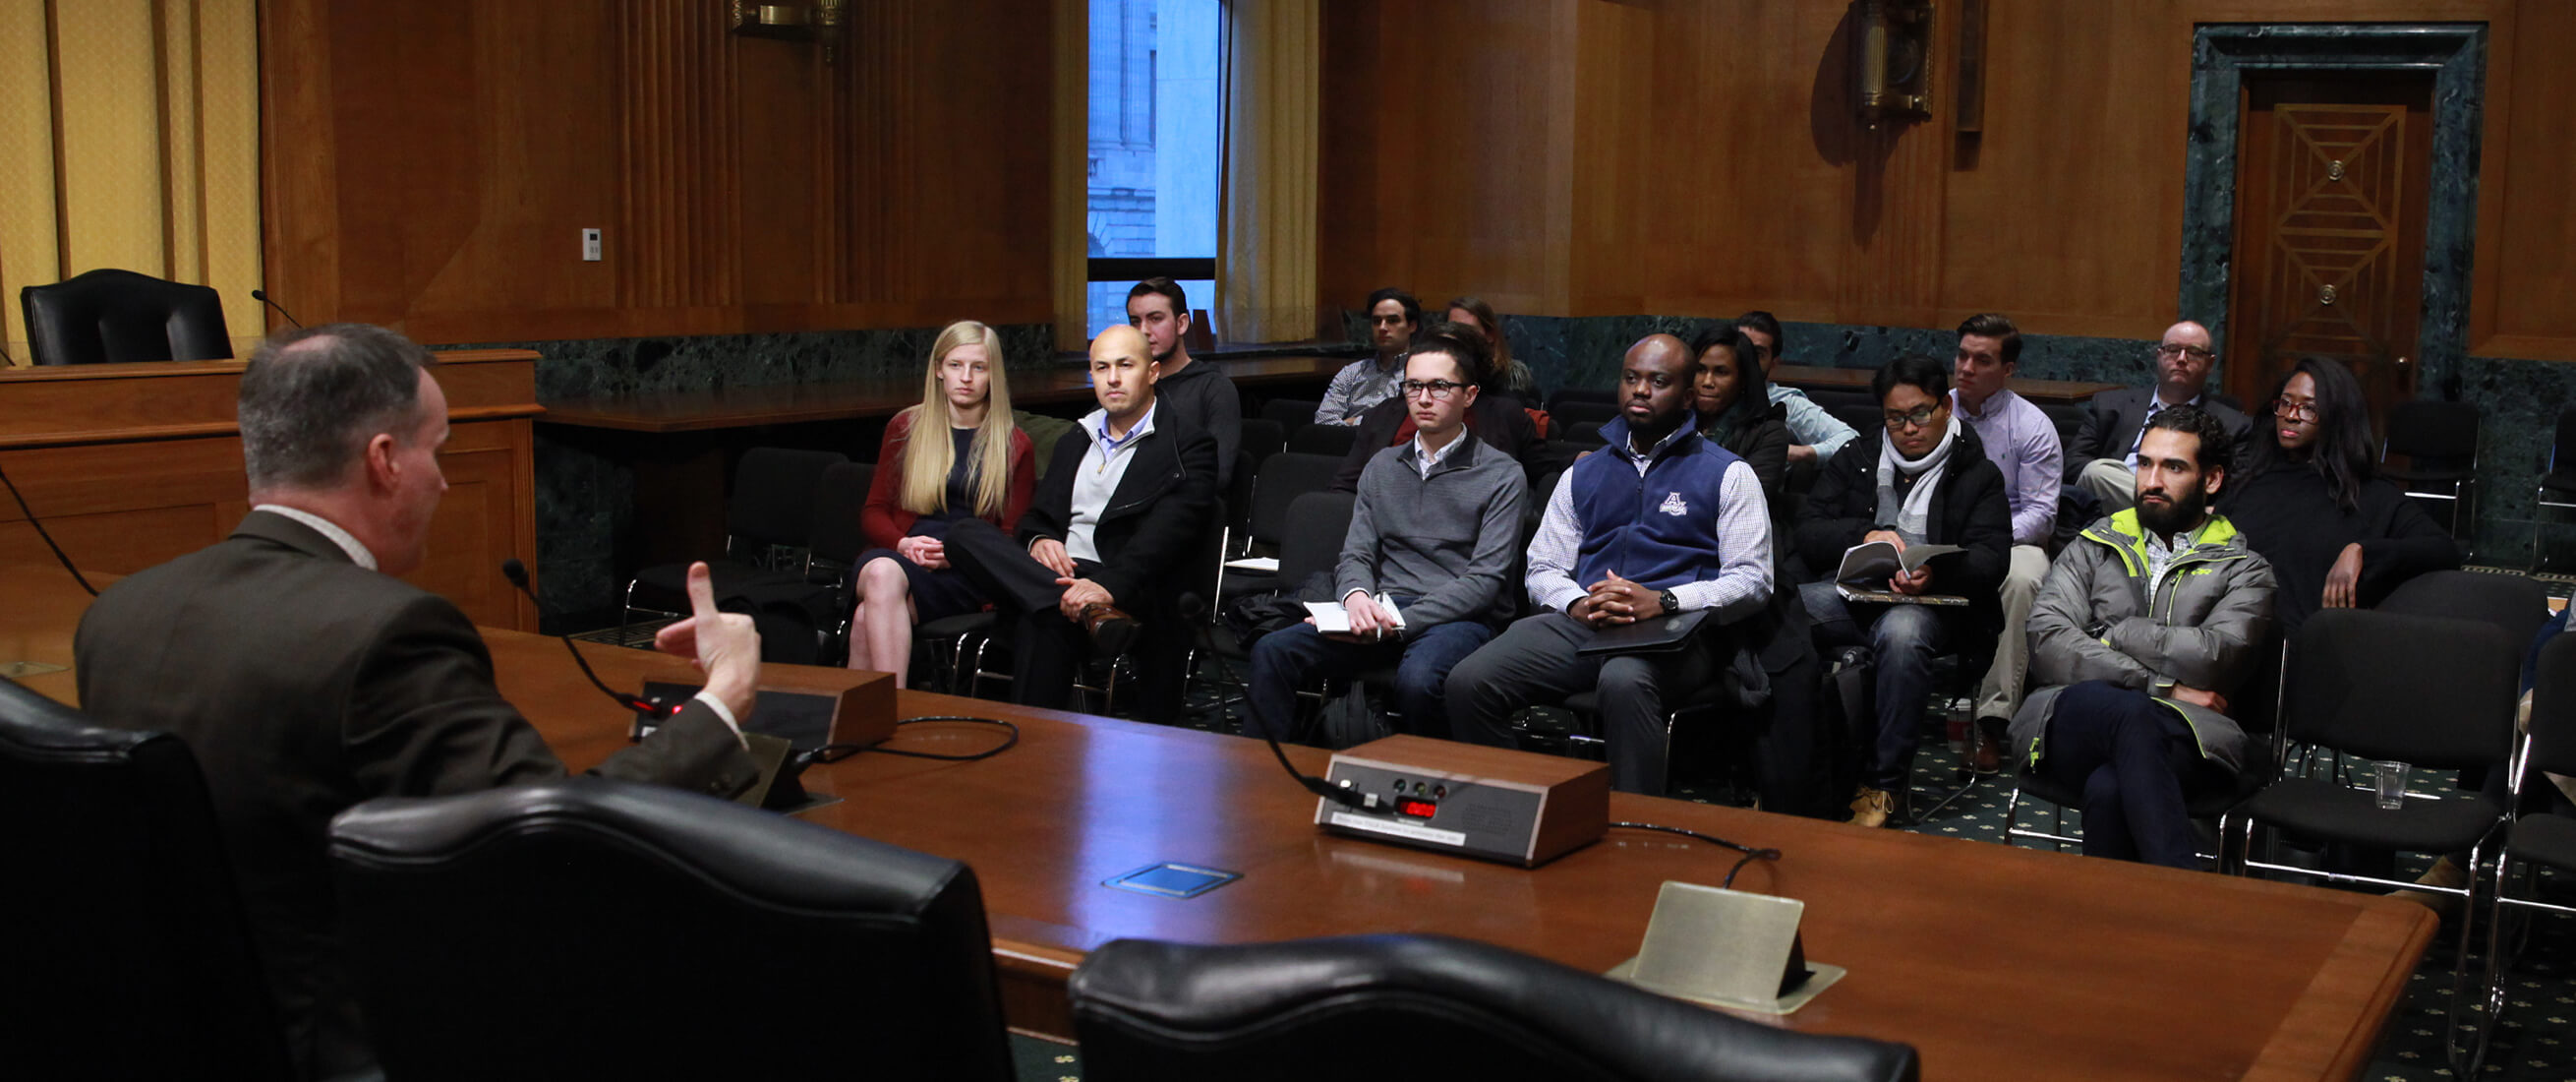 Graduate students visit senate finance committee downtown.